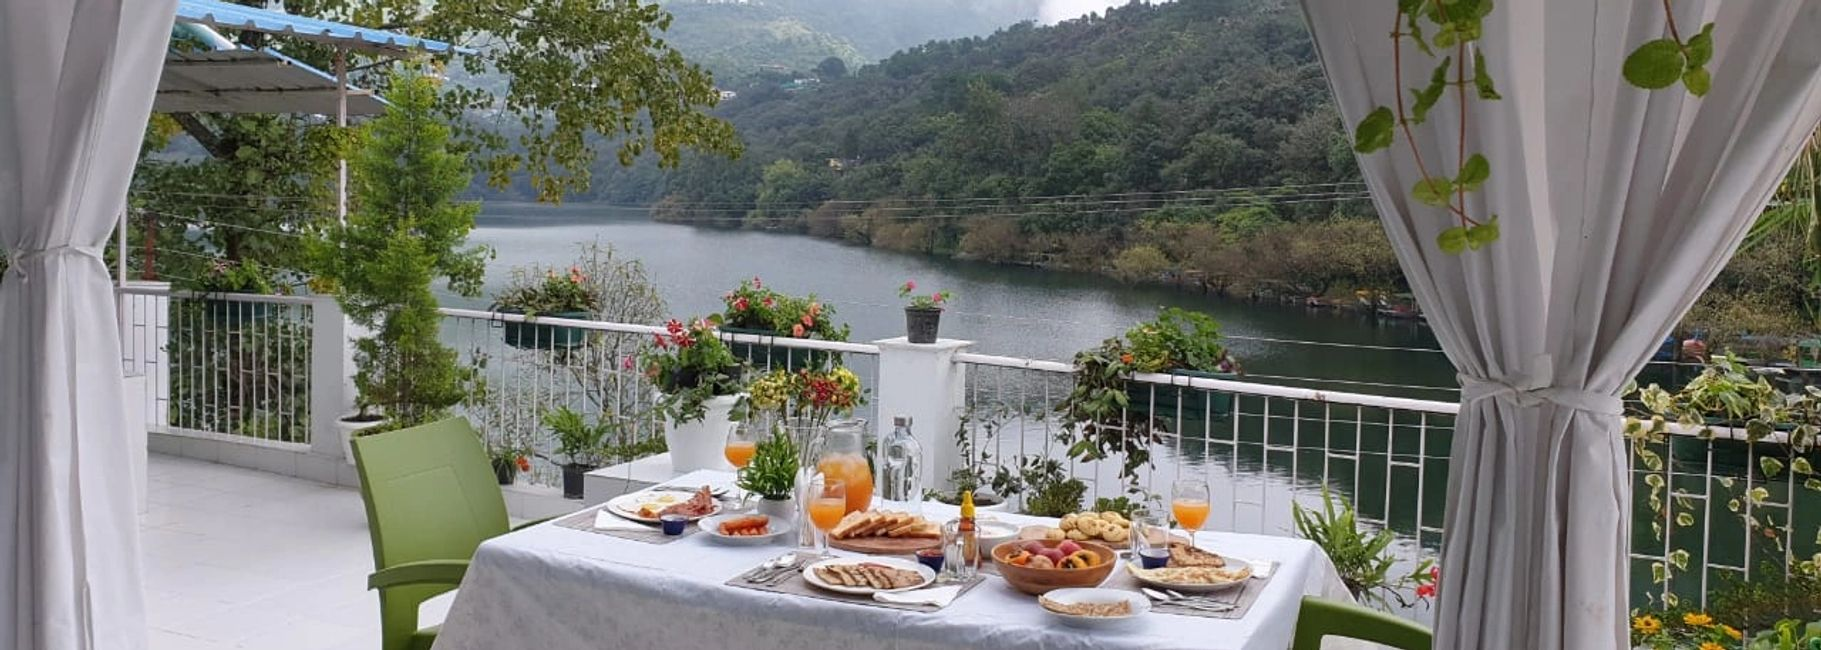 long stay homestay in Uttarakhand